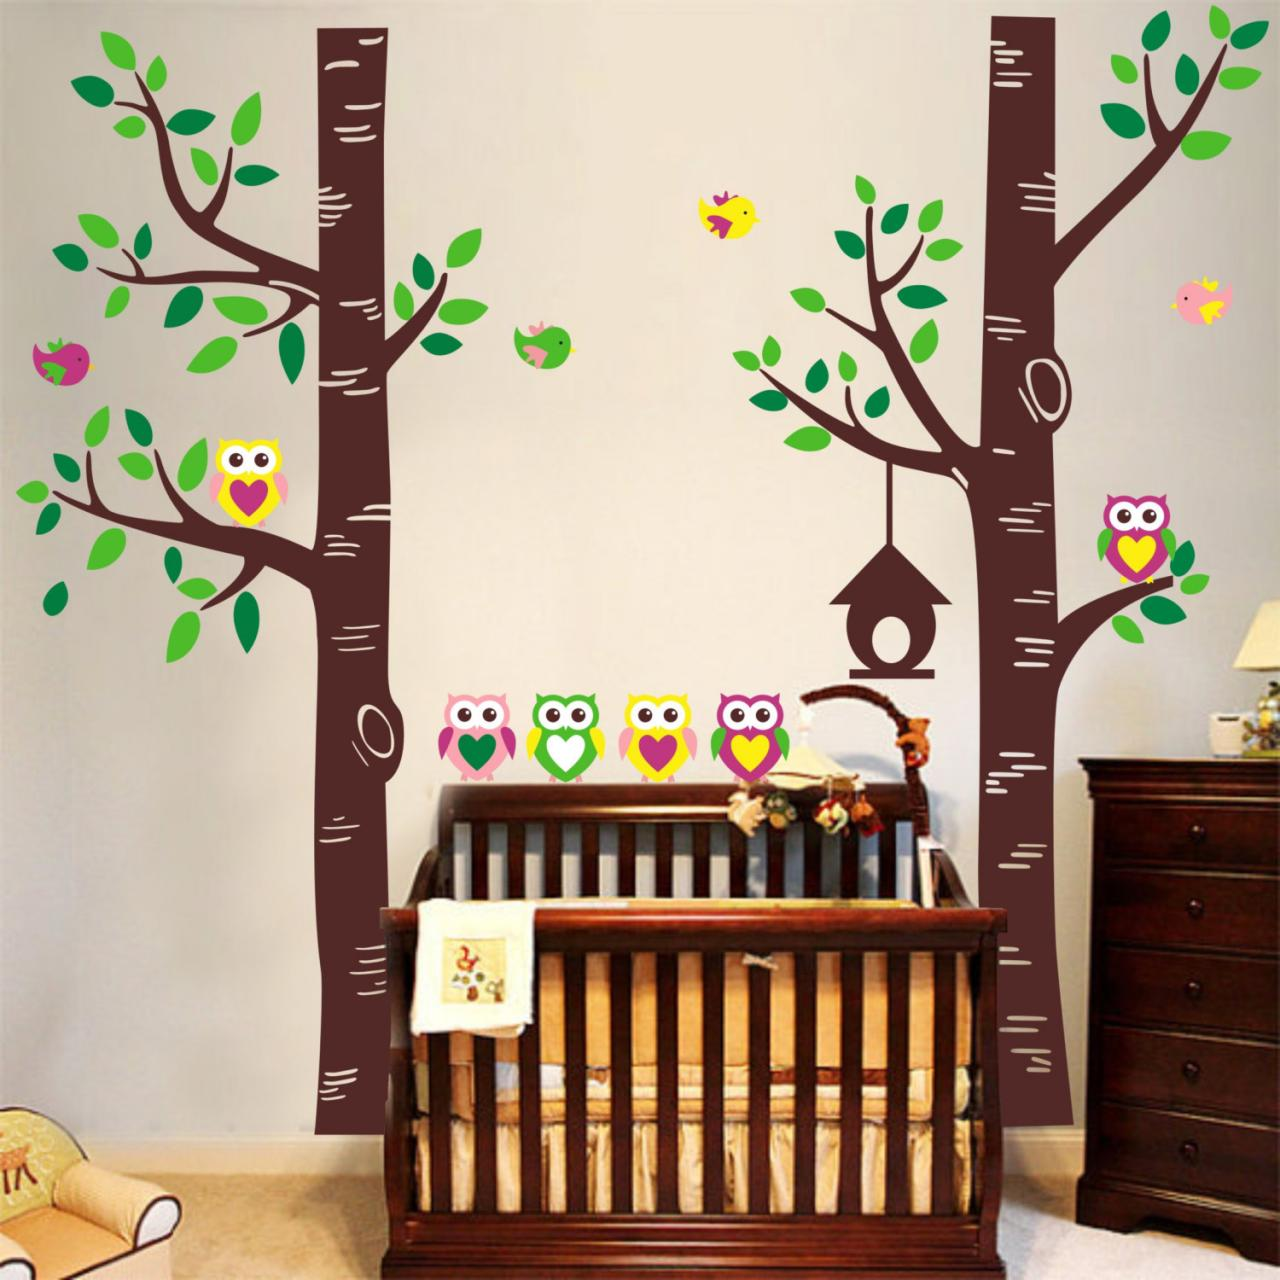 two lartge tree forest with owl family leaves leaf bird owls art decals wall sticker vinyl wall. Black Bedroom Furniture Sets. Home Design Ideas